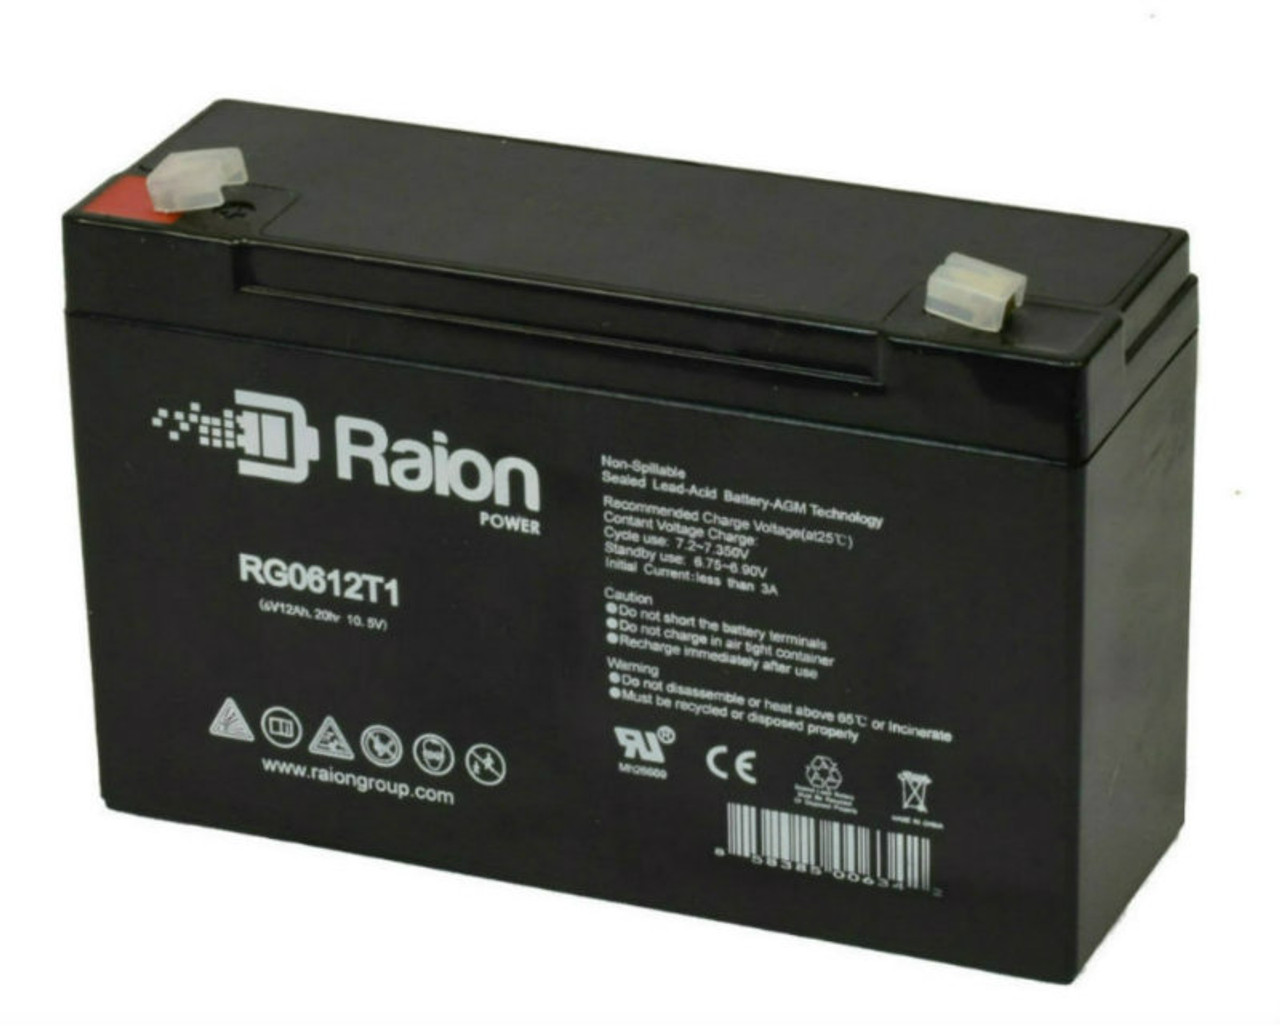 Raion Power RG06120T1 Replacement Battery Pack for York-Wide Light D2E2C emergency light